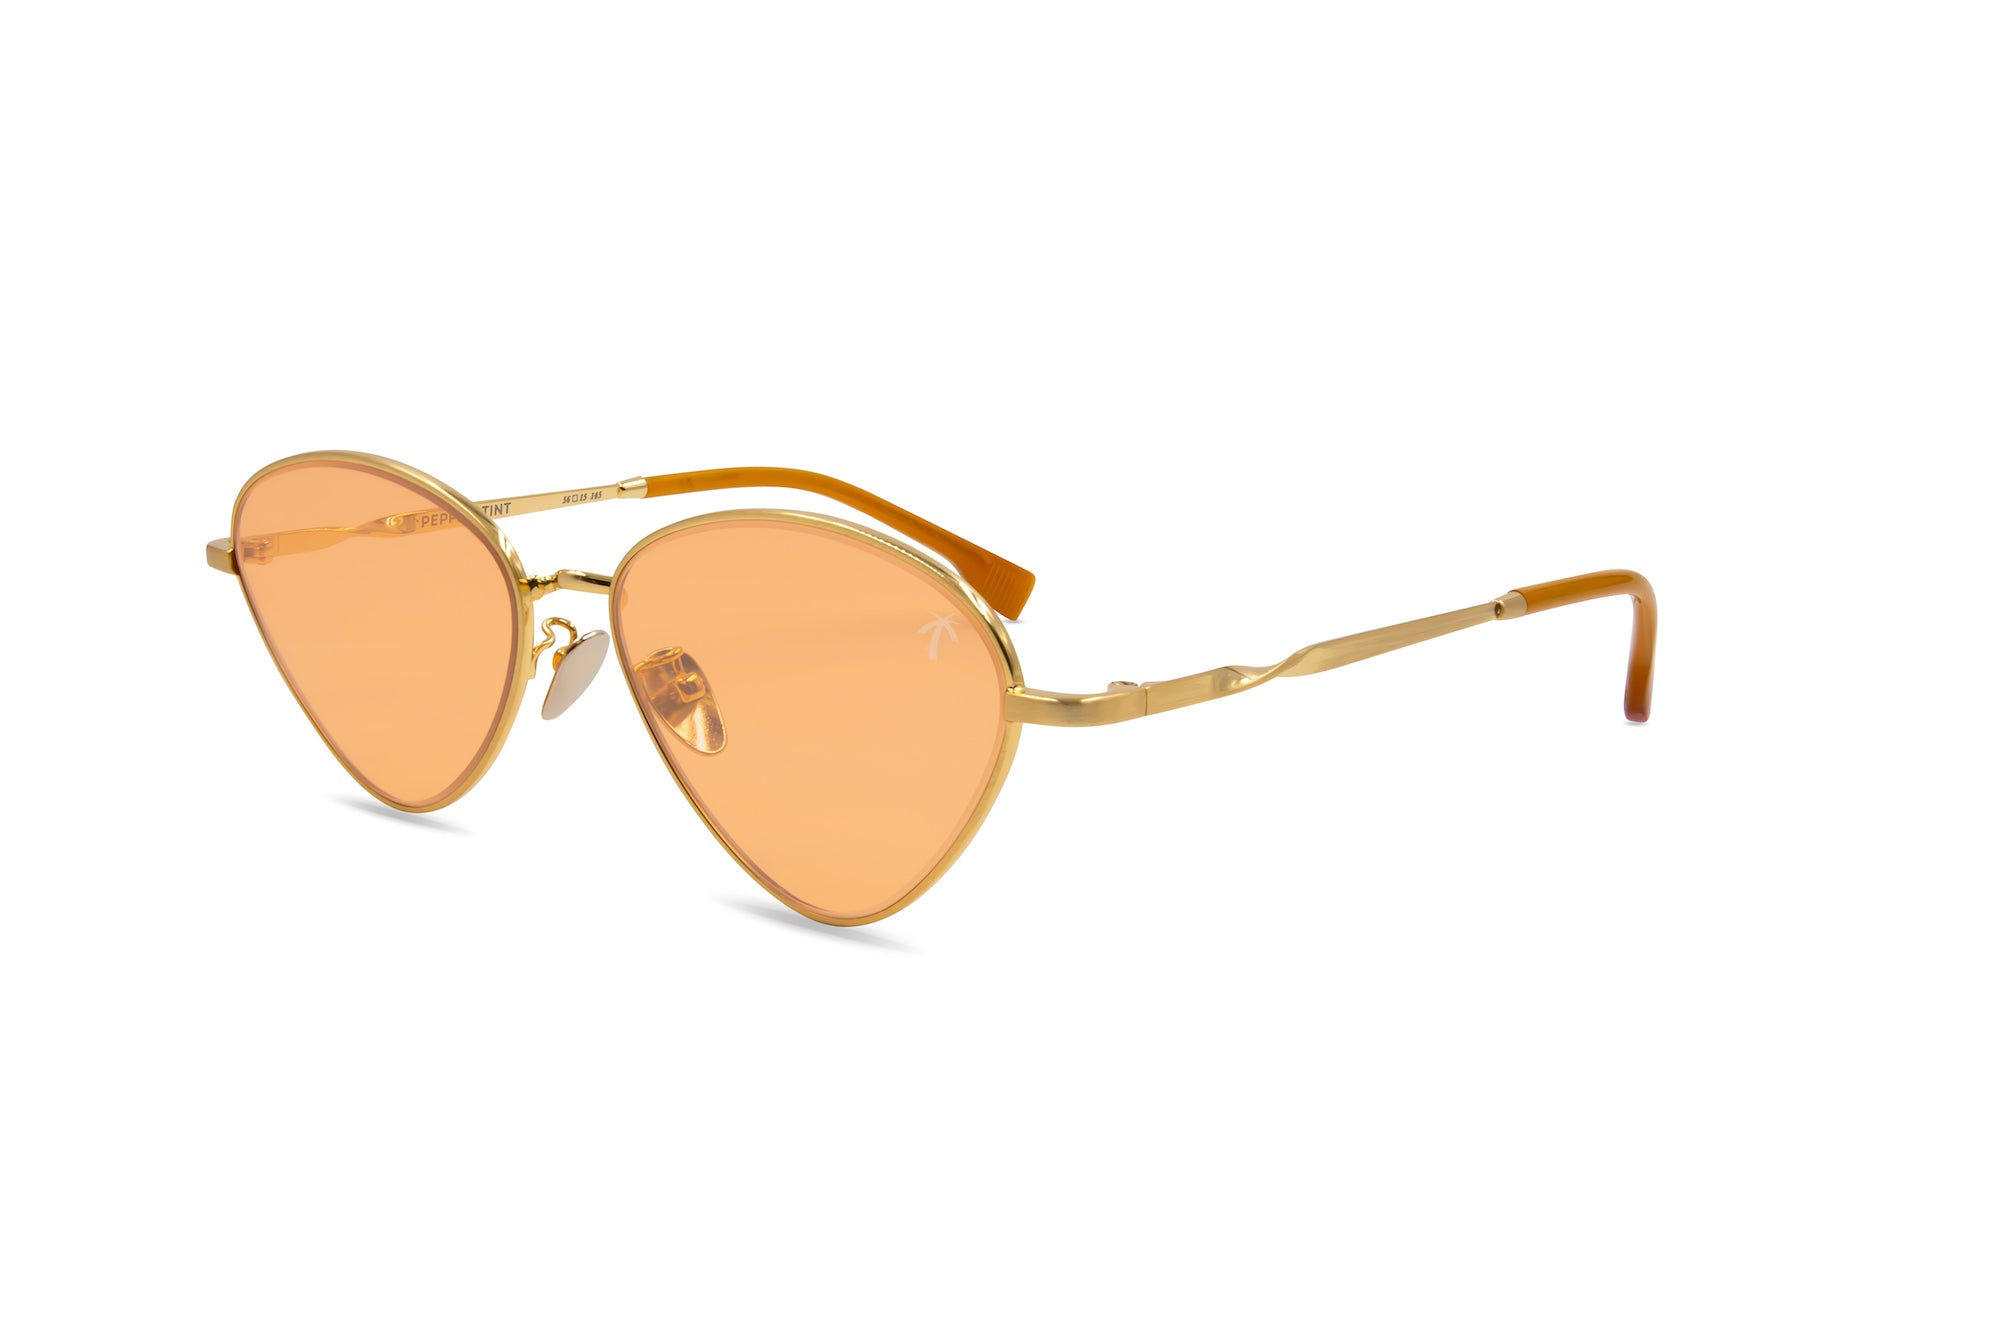 Olive in Orange - Peppertint - Designer sunglasses